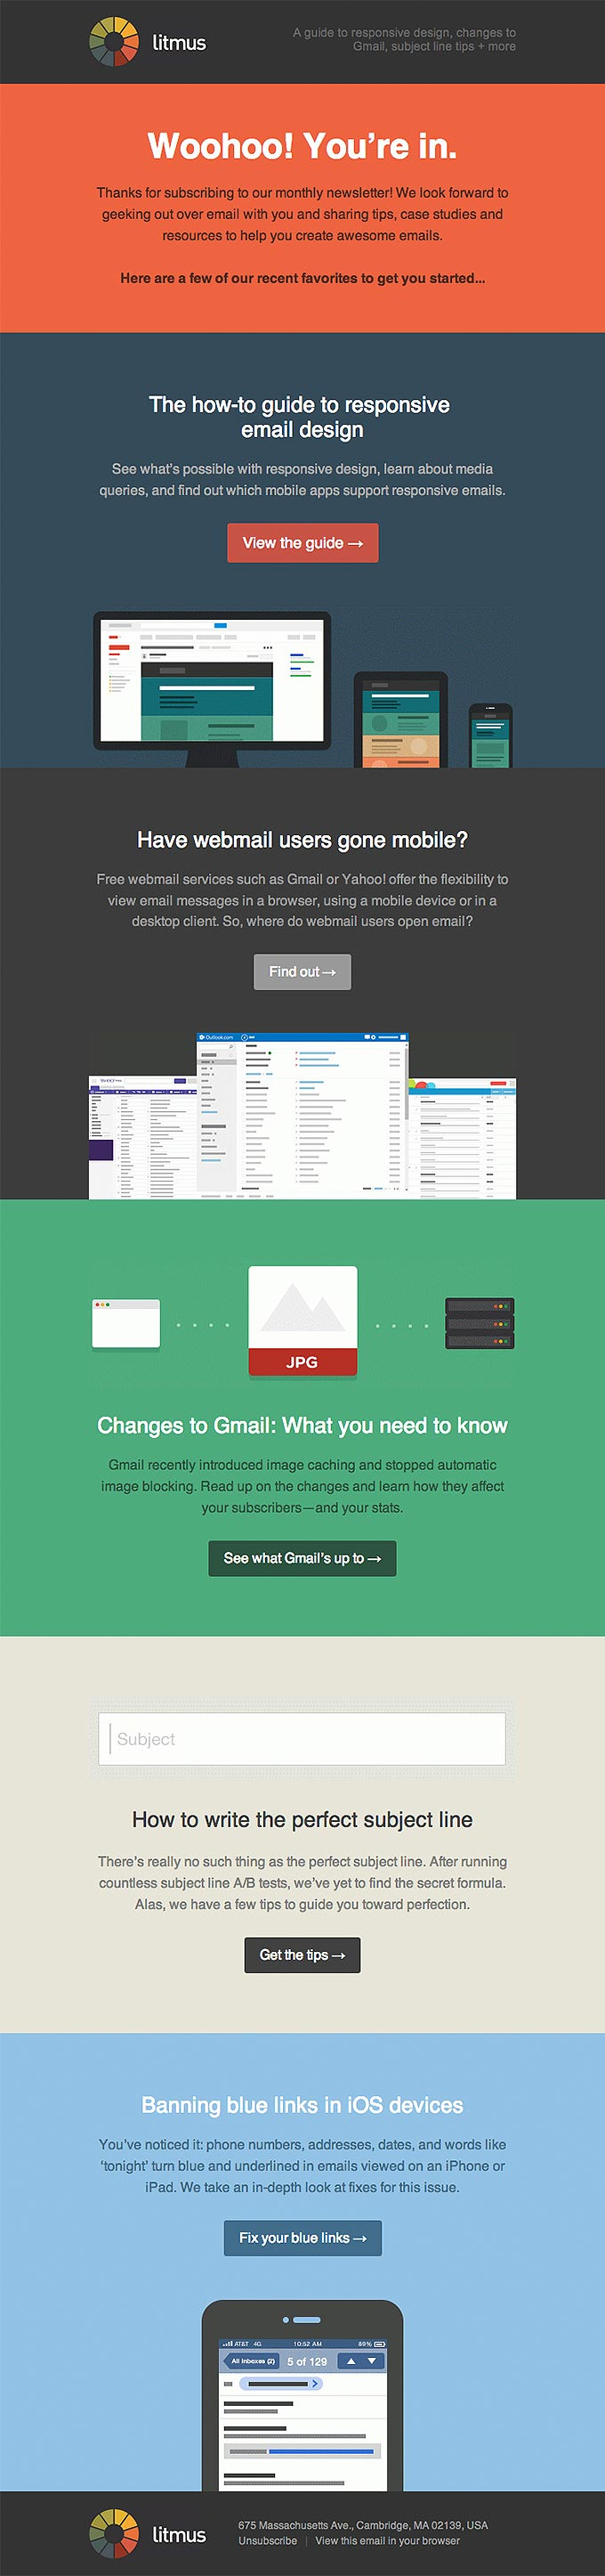 Welcome Email Newsletter Design from Litmus